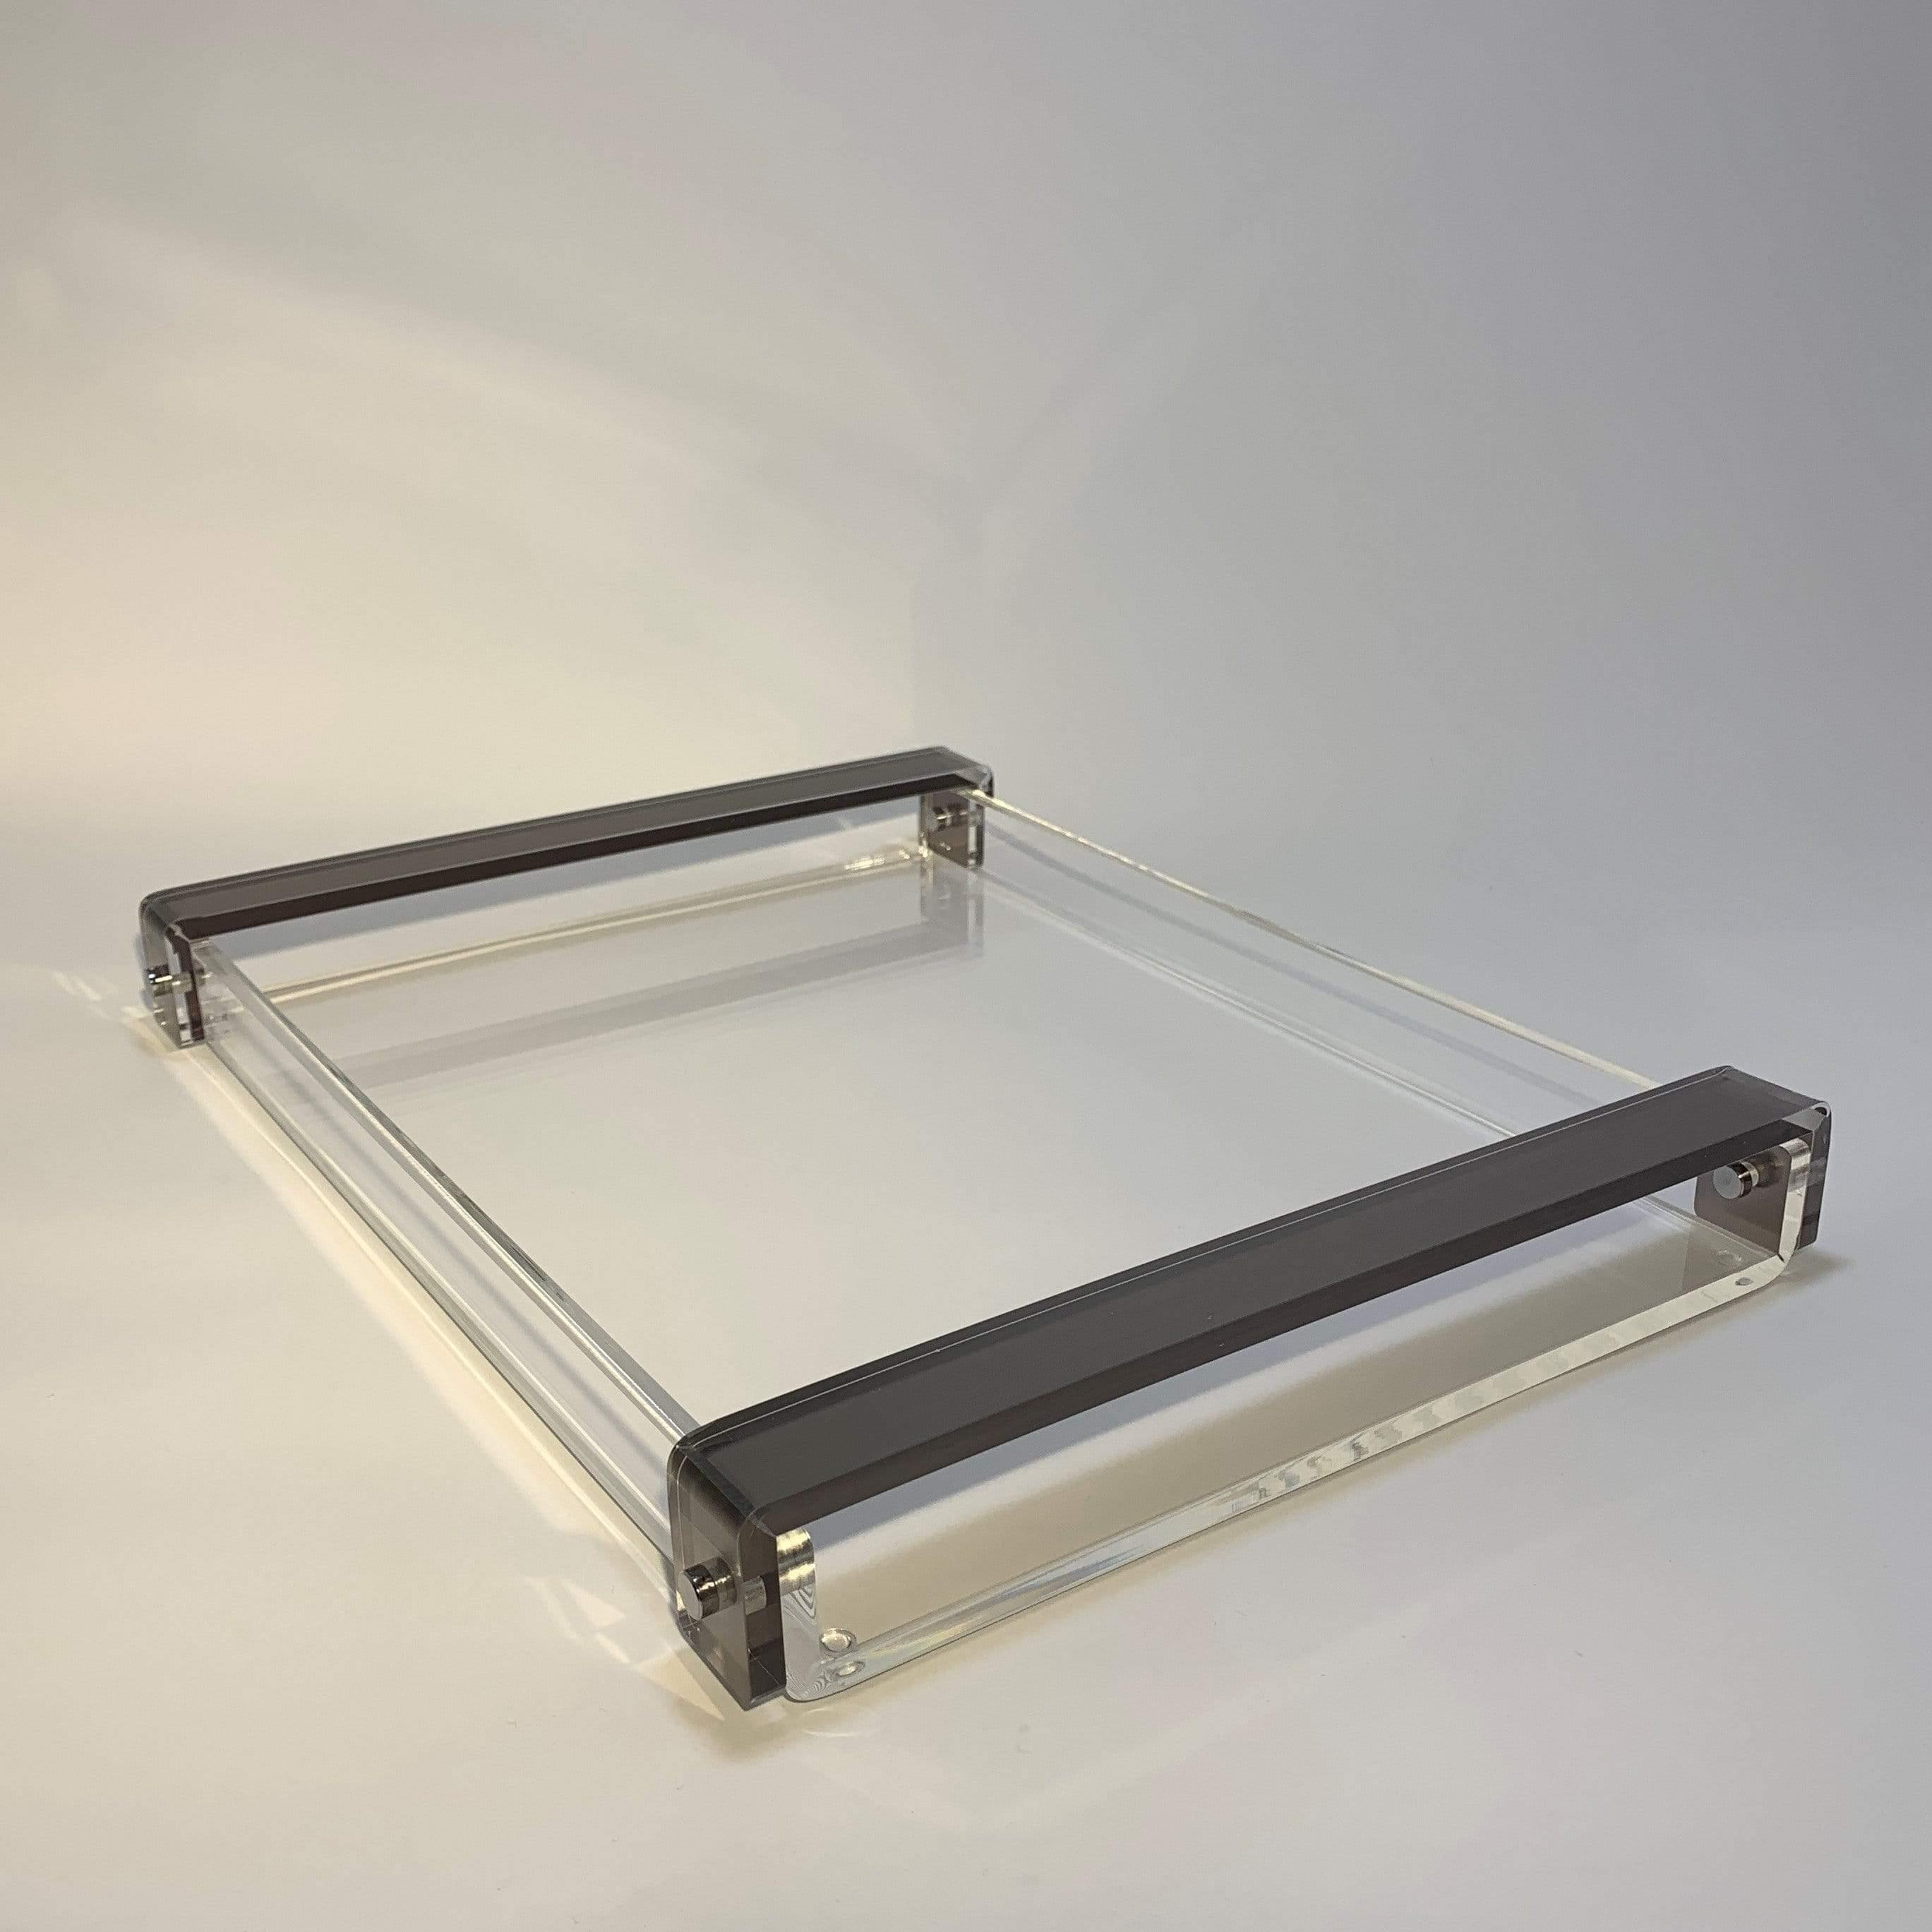 Acrylic Tray with Silver Handles